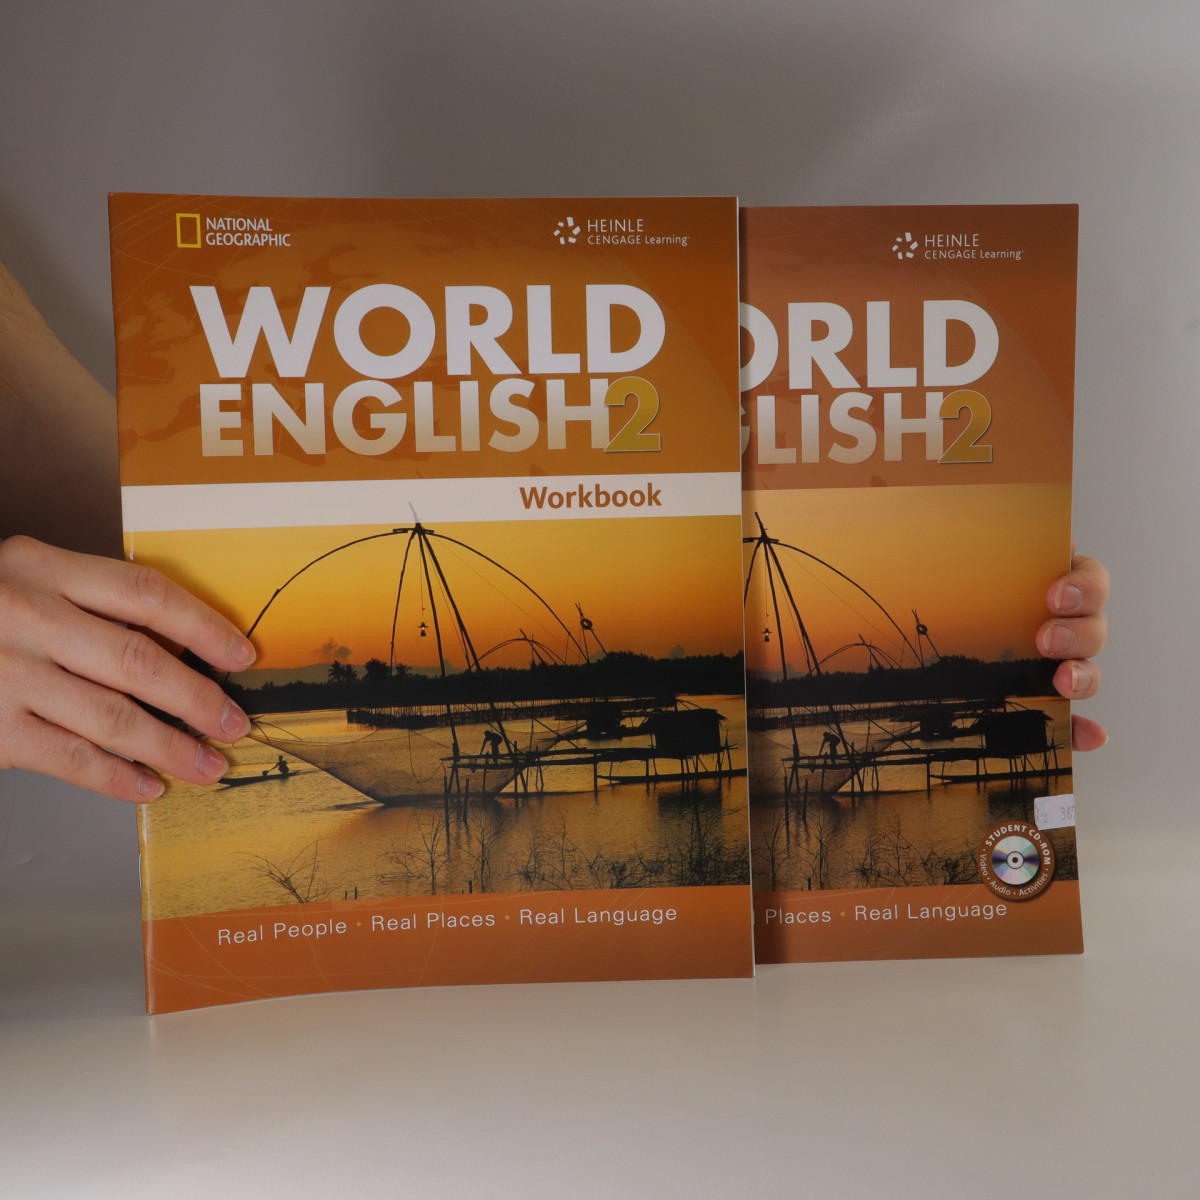 antikvární kniha World English 2. Real People, Real Places, Real Language. Student's Book. Workbook, 2010